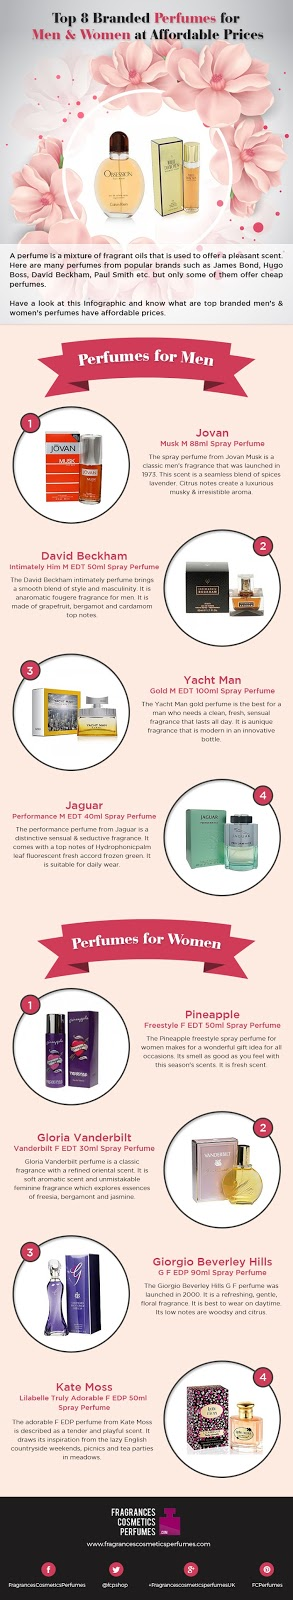 Top 8 branded perfumes for men and women